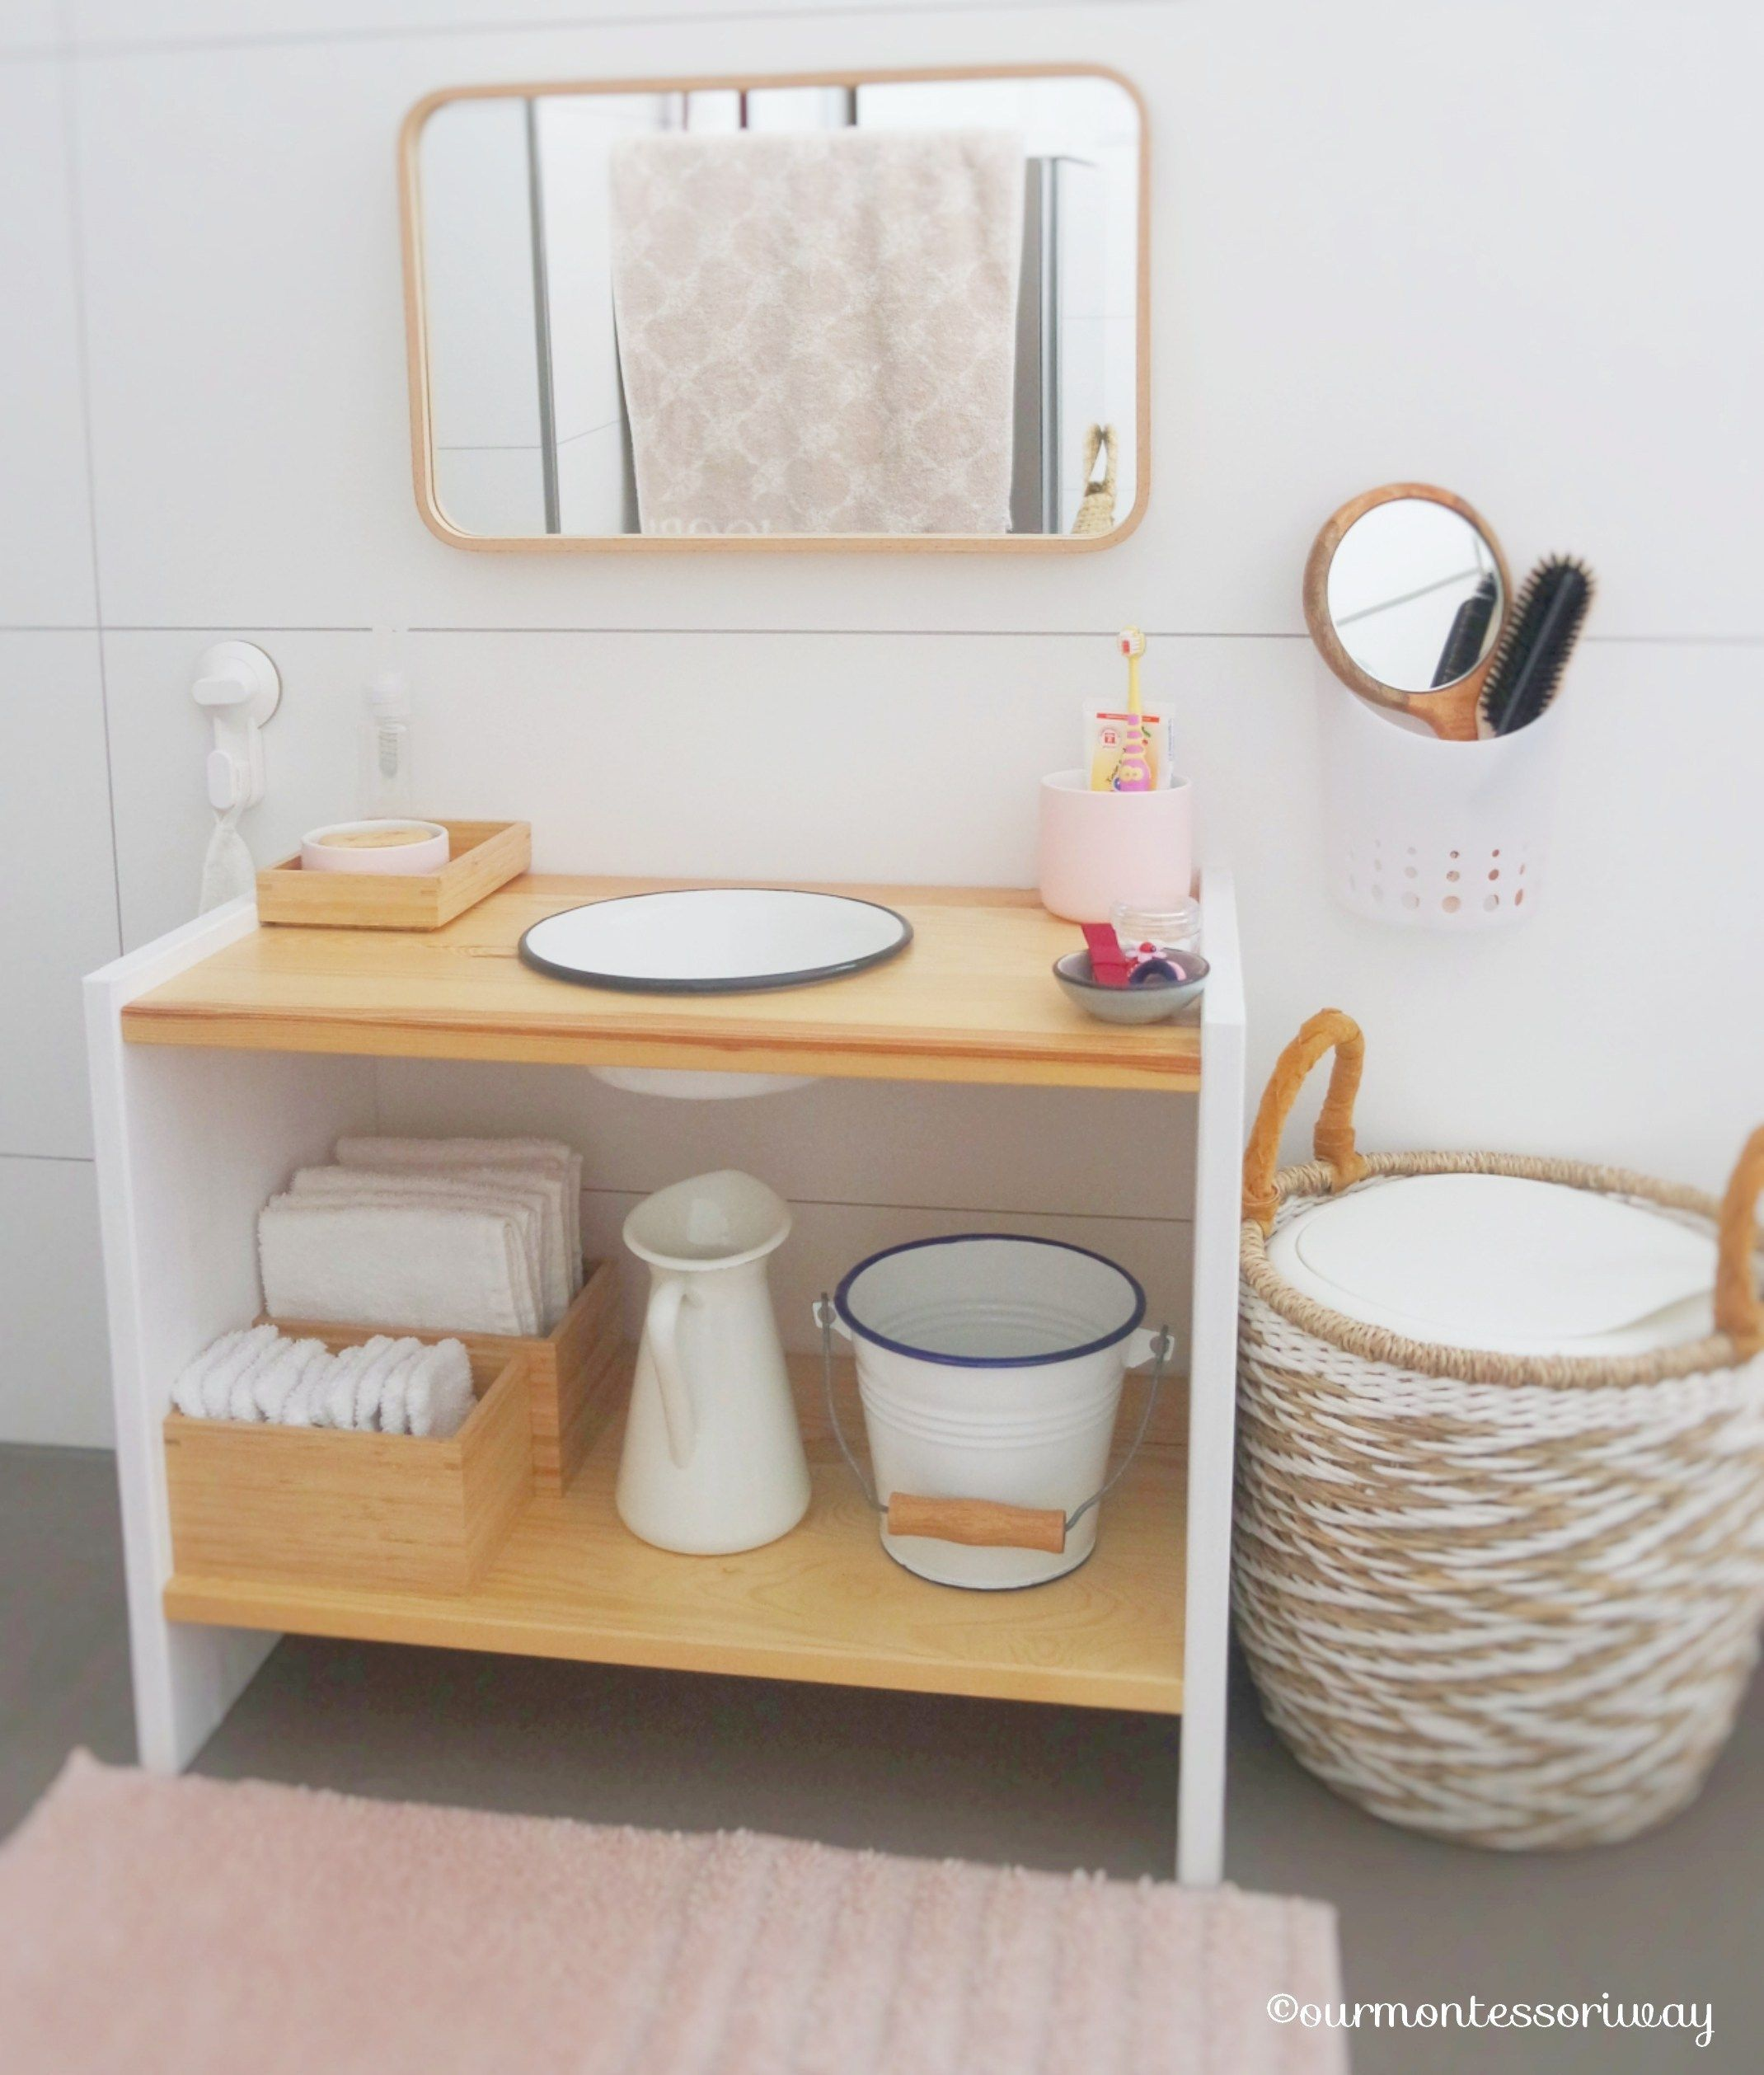 Cosima S Area In The Bathroom At 18 Months Part 1 Our Montessor In 2020 With Images Montessori Furniture Baby Bathroom Montessori Playroom